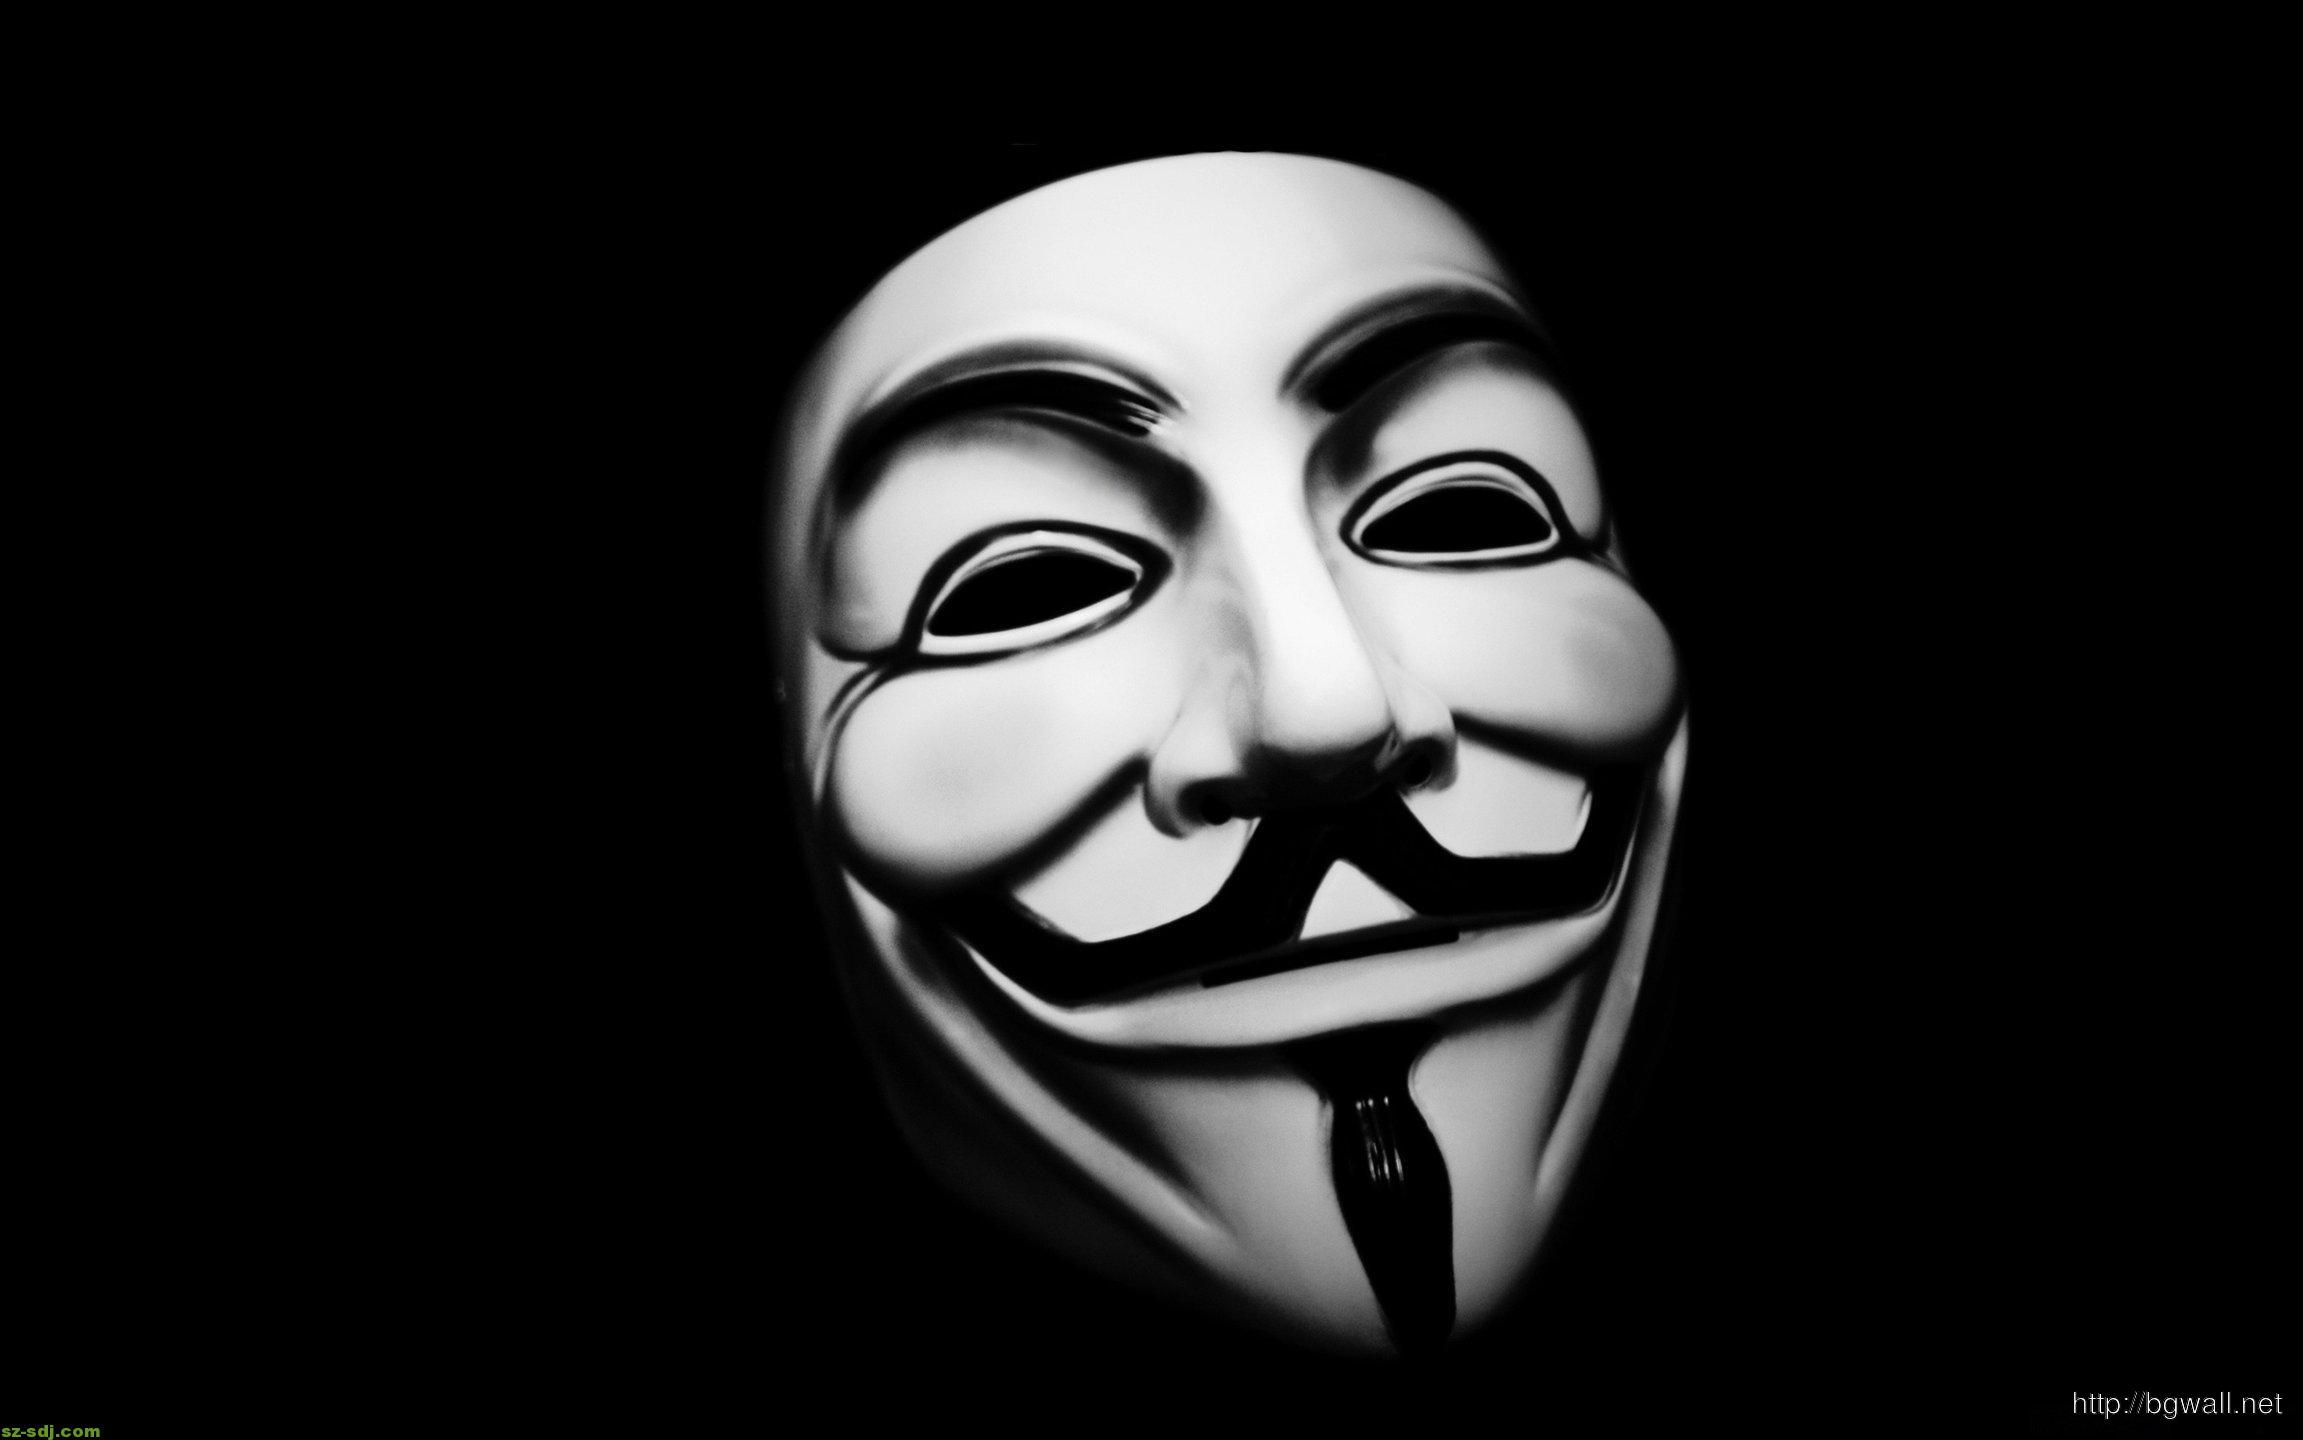 Anonymous Mask Wallpaper Image Background Wallpaper Hd